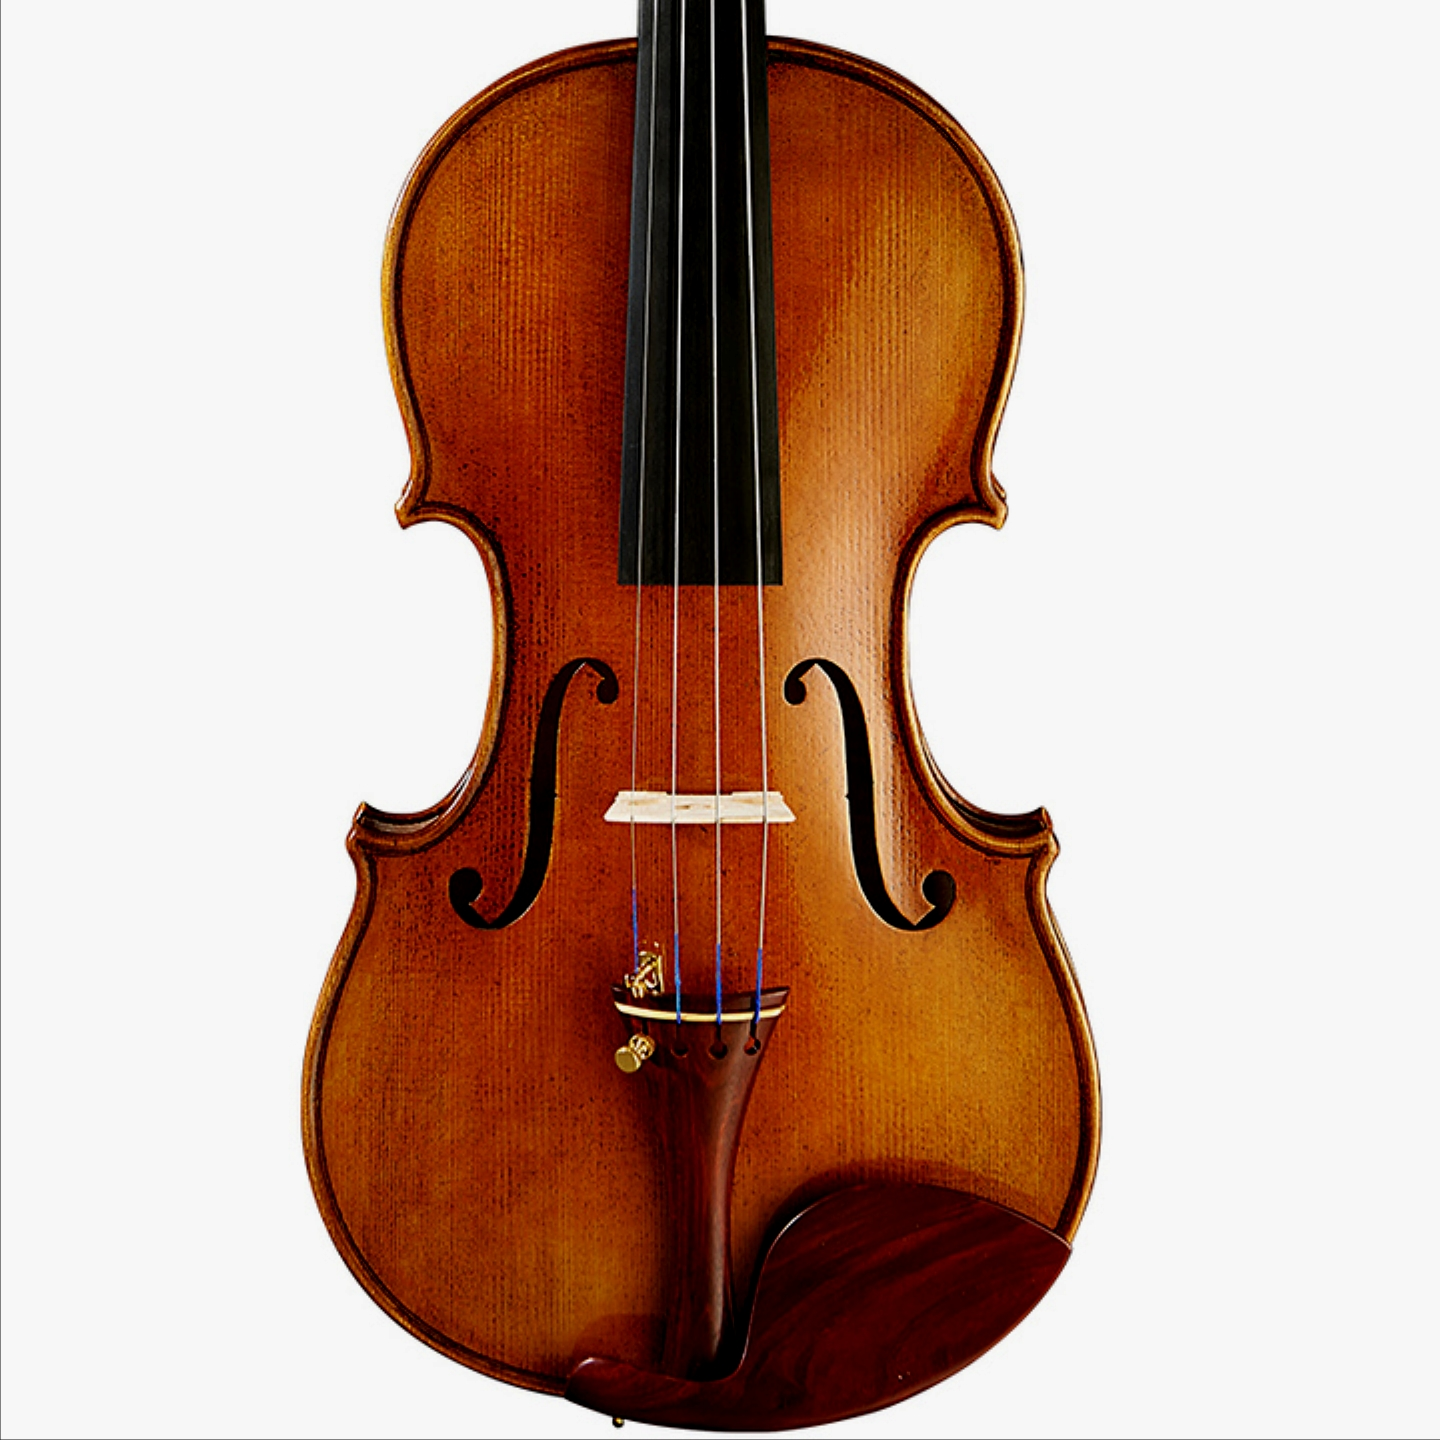 The whole board manual playing professional violin pattern shipping Italy 1715 Cremona import master